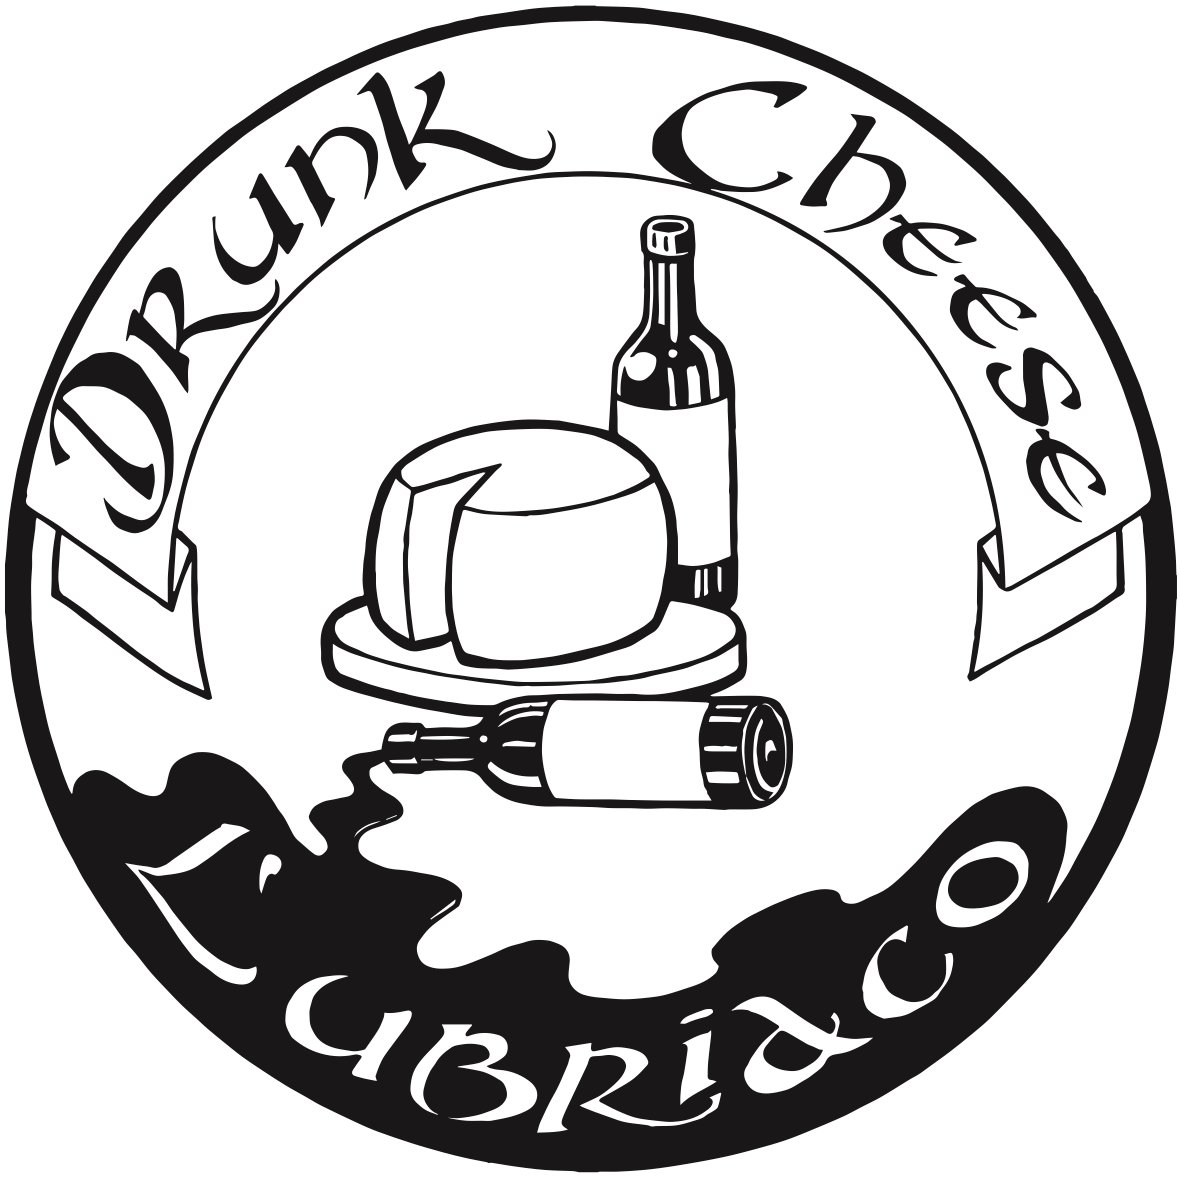 drunk-cheese-e1584979775184.png